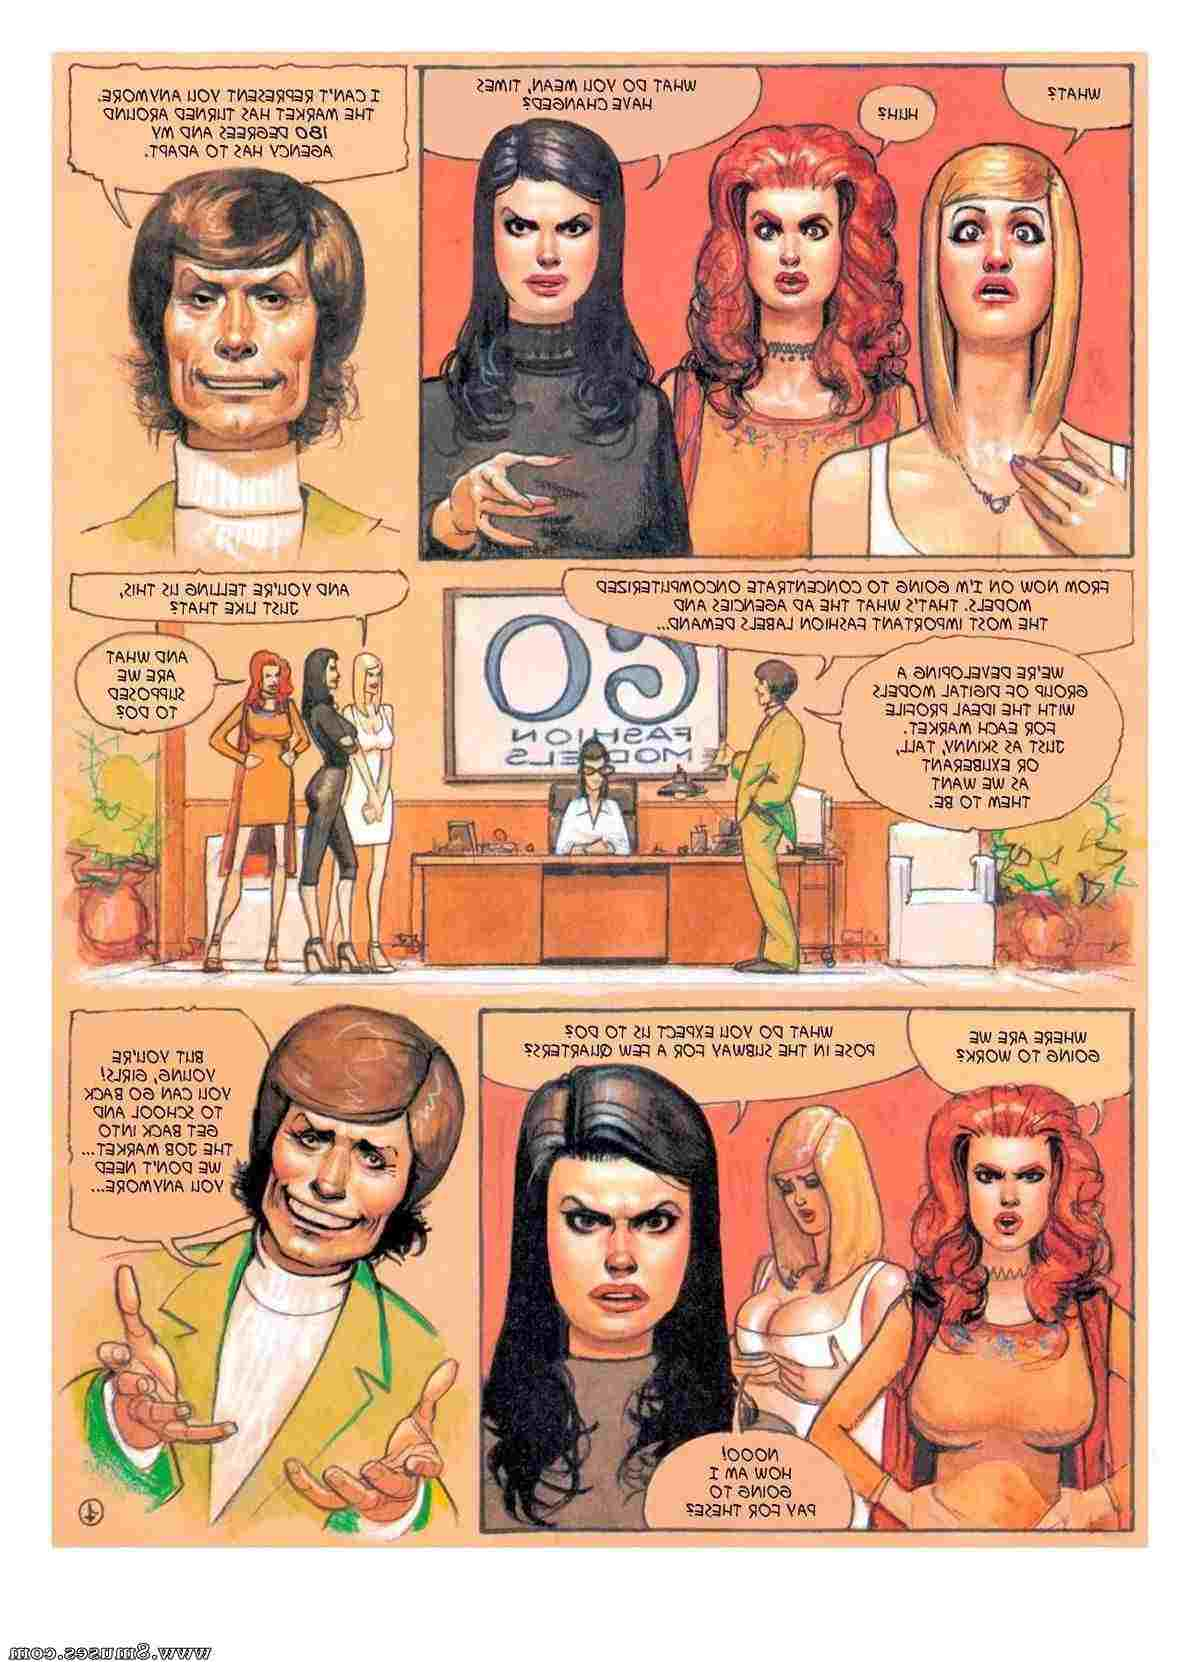 Ignacio-Noe-Comics/All-the-Right-Career-Moves All_the_Right_Career_Moves__8muses_-_Sex_and_Porn_Comics_9.jpg